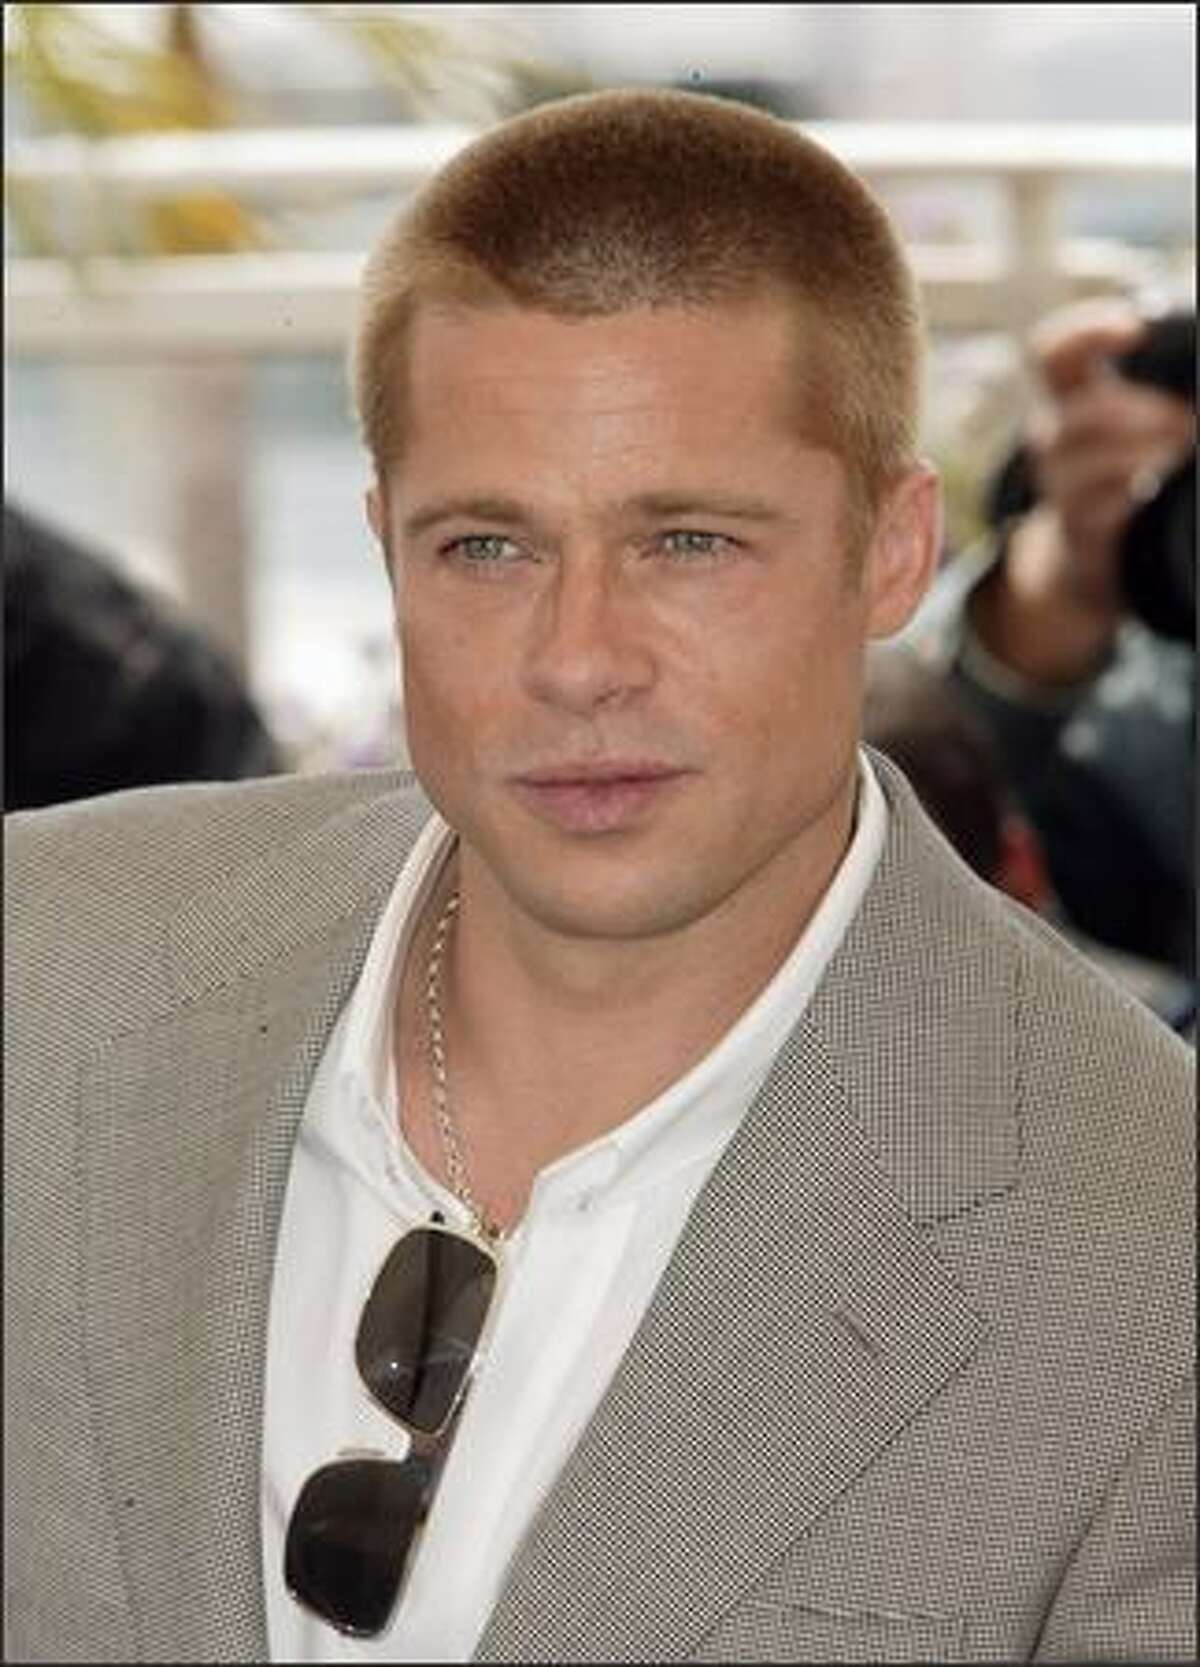 Brad Pitt attends a photocall for